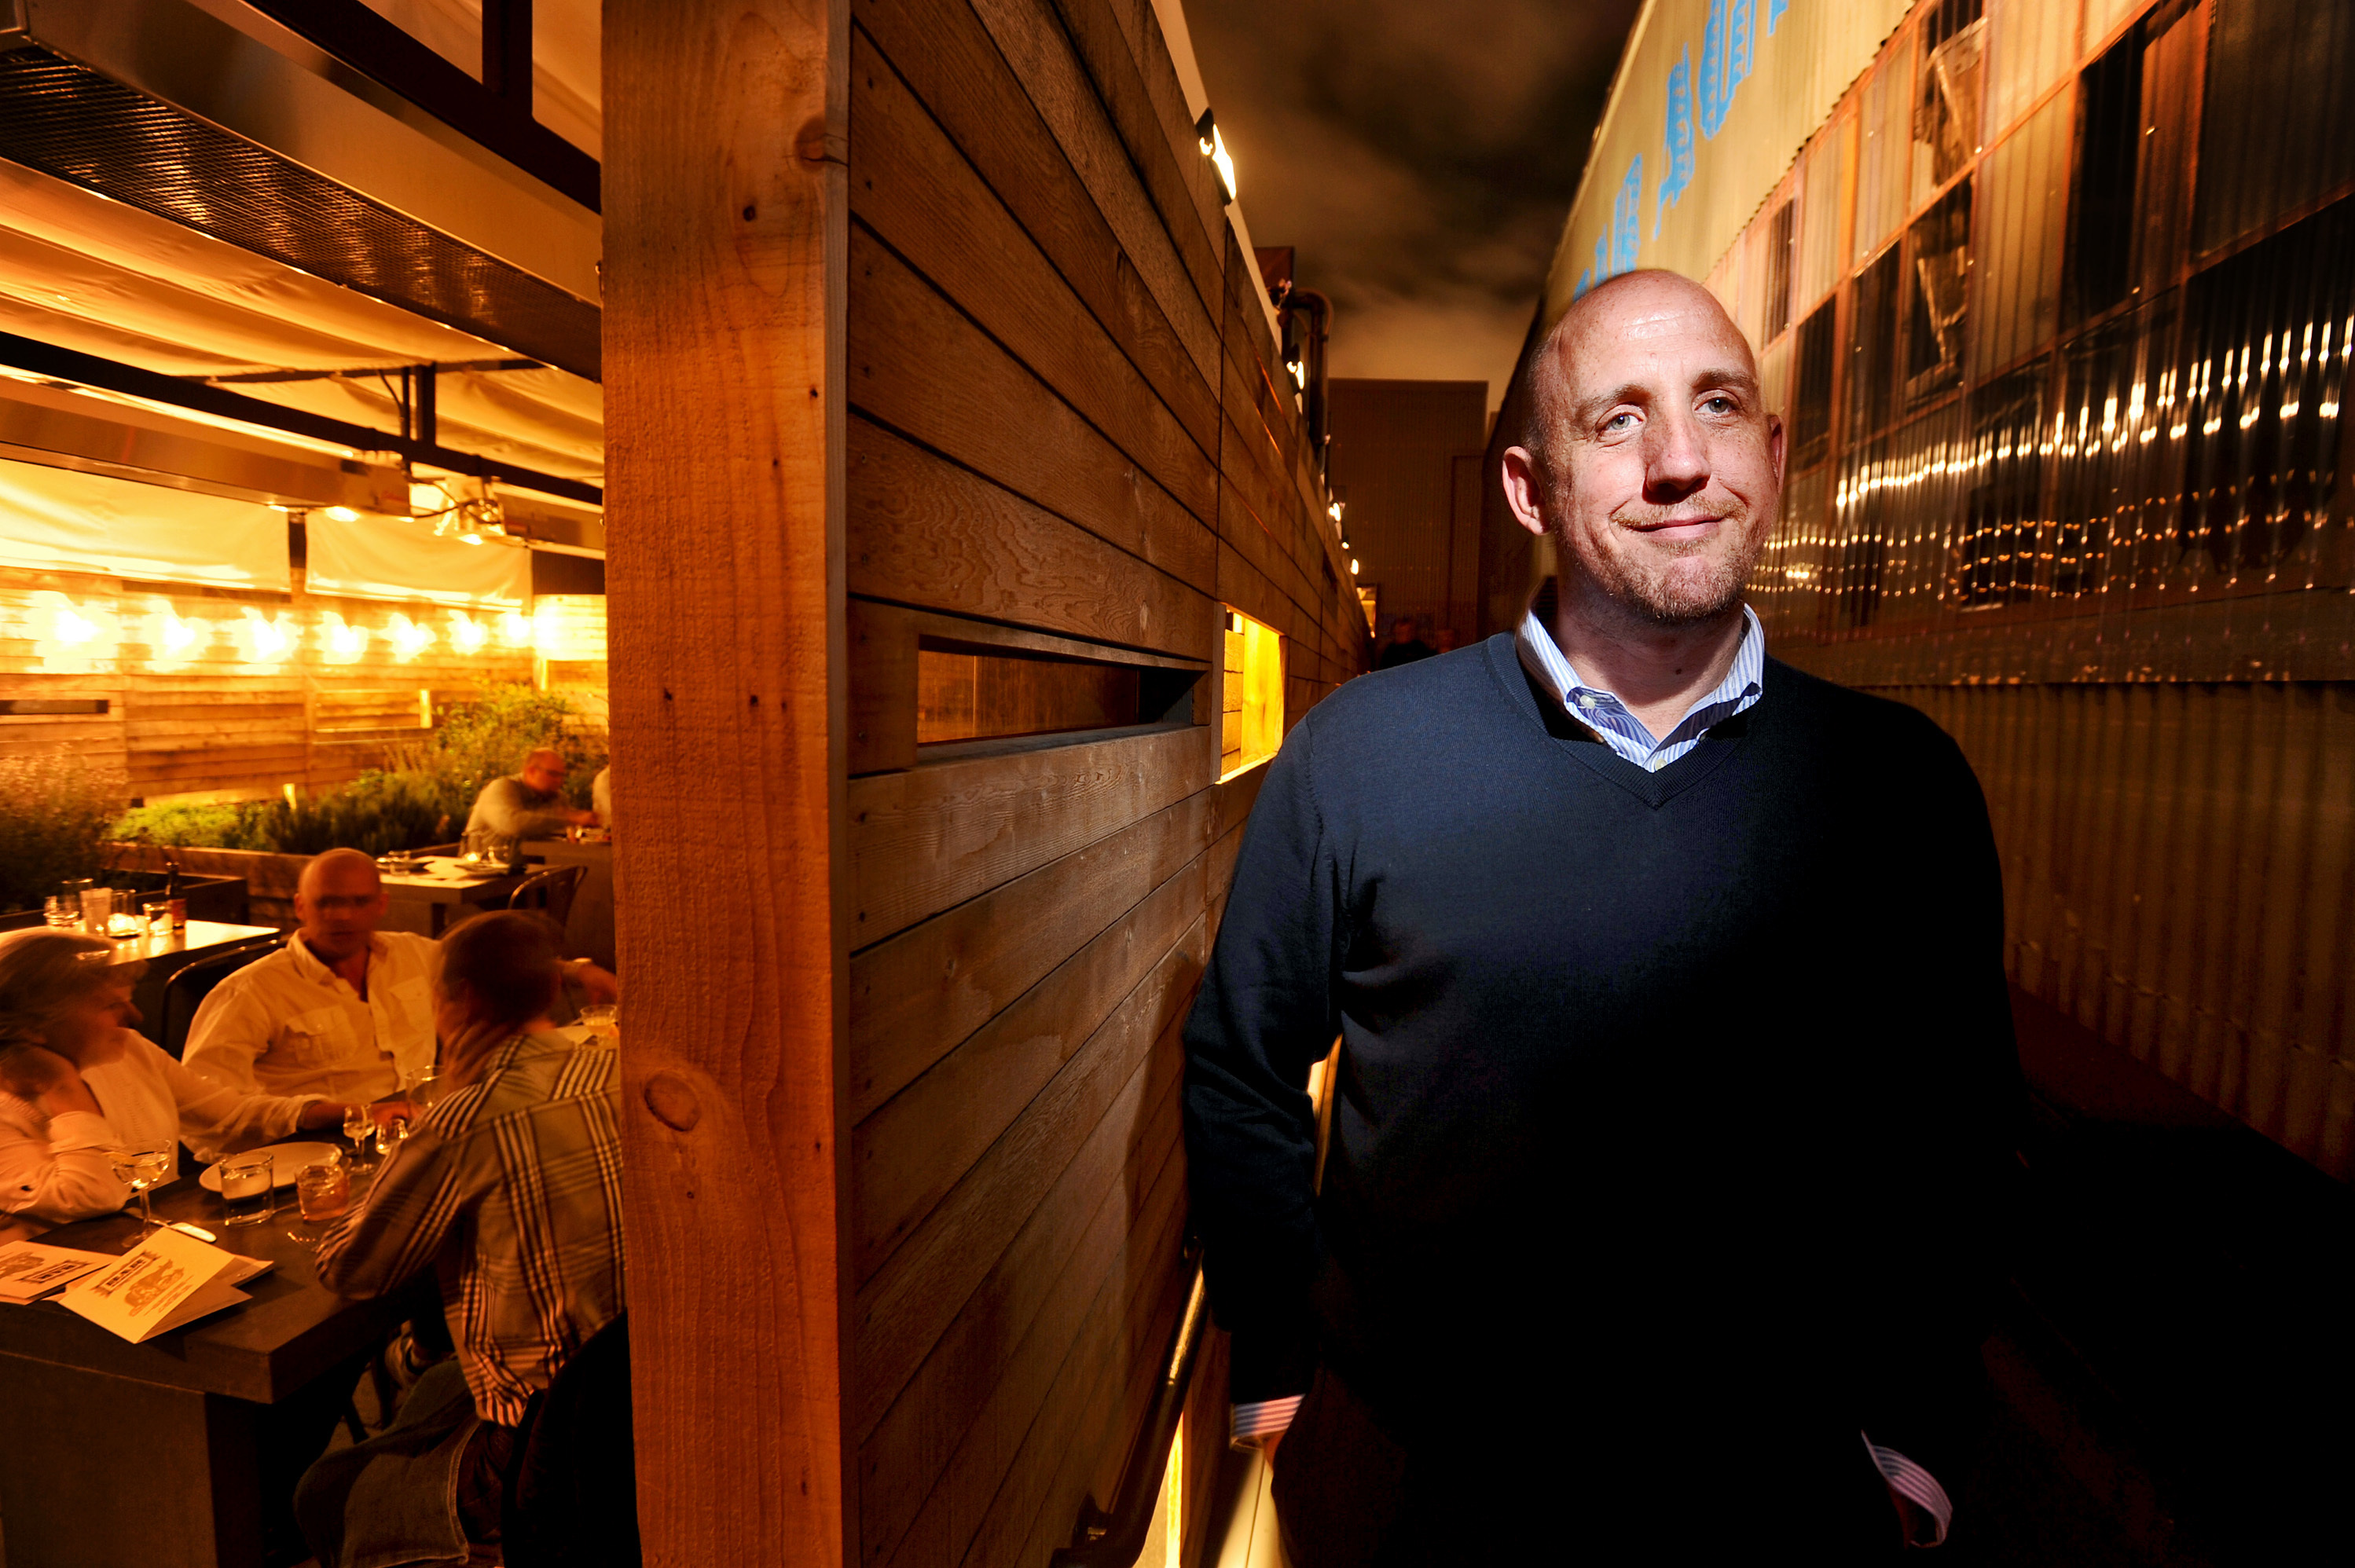 Thad Vogler, at his restaurant Bar Agricole in 2011, says the no-tipping model didn't work out for his two San Francisco restaurants. Looking back, he would've hiked up his prices even more so the money flowed to the staff more evenly.